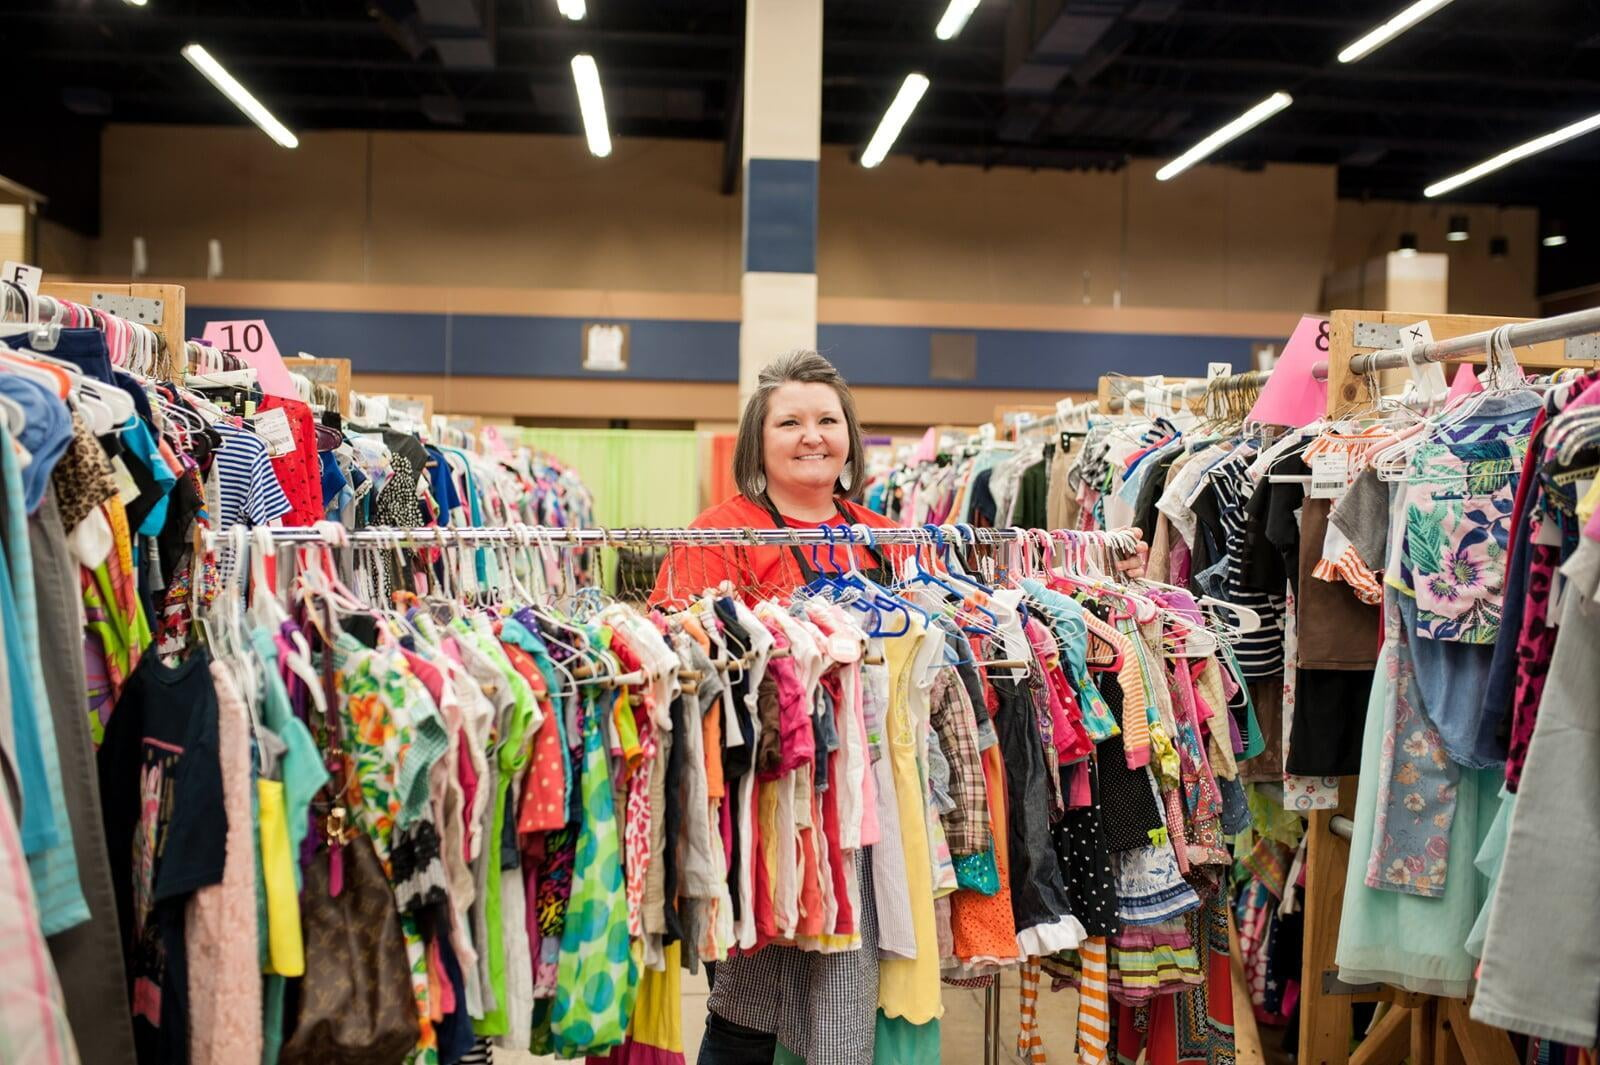 A smiling Team Member stands behind a rack of toddler girl's clothing at the sale.